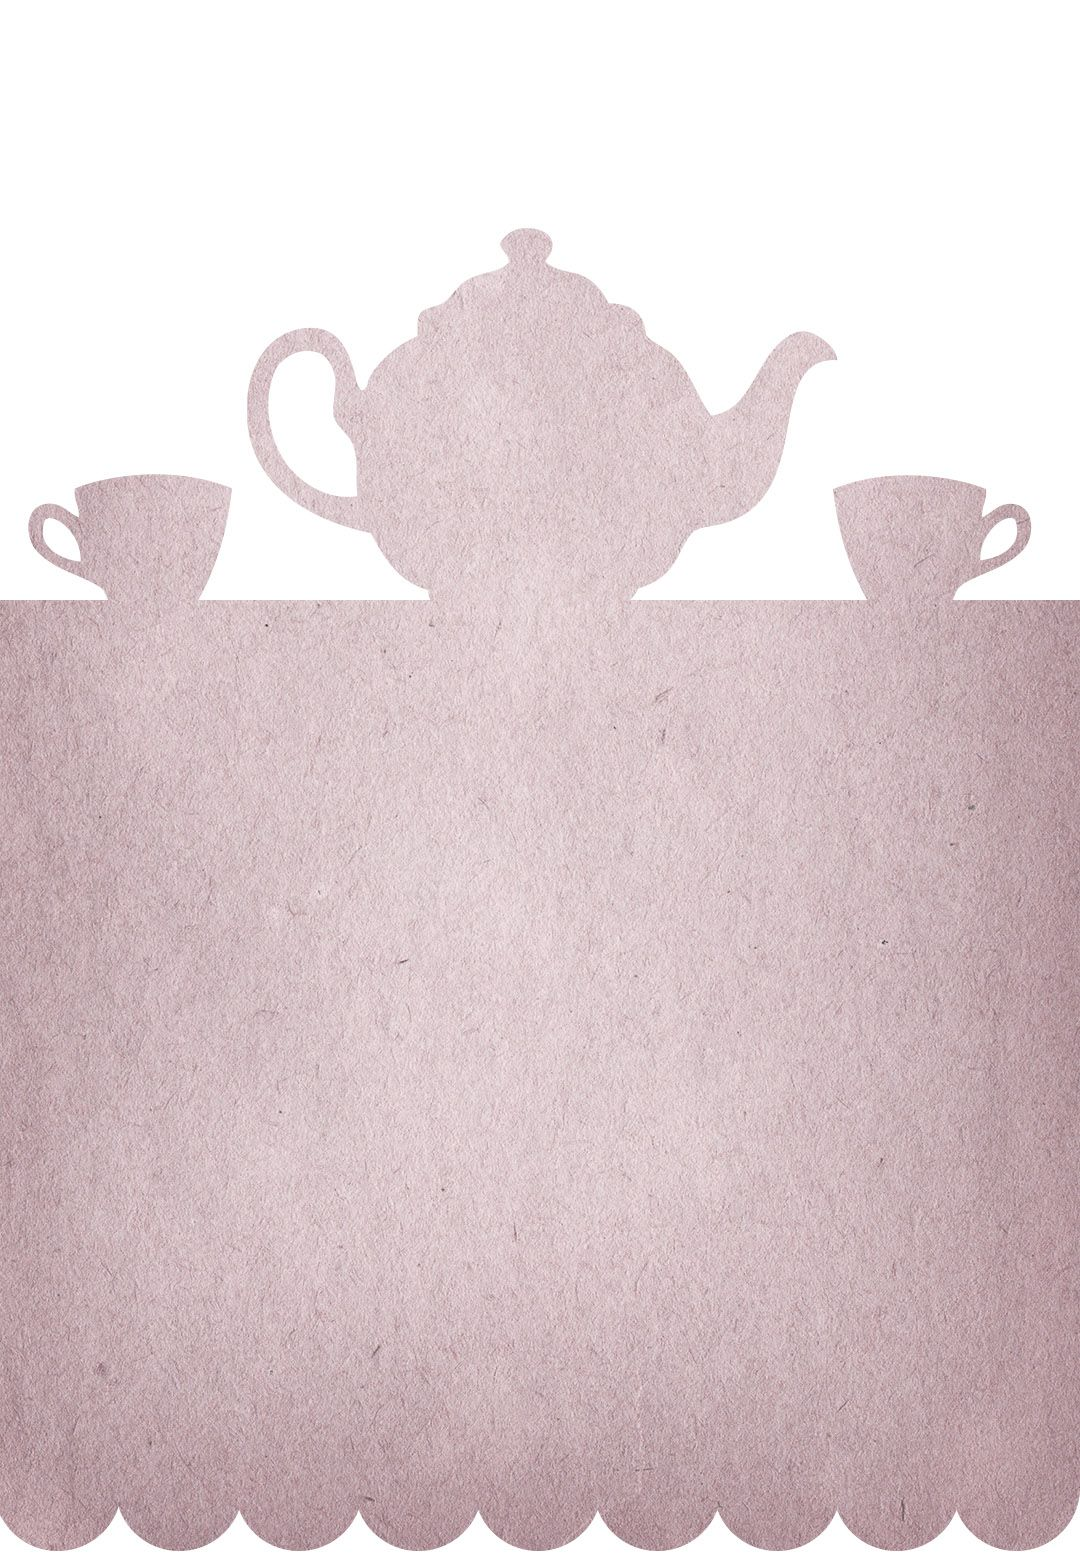 Tea Party - Free Printable Party Invitation Template | Greetings ...